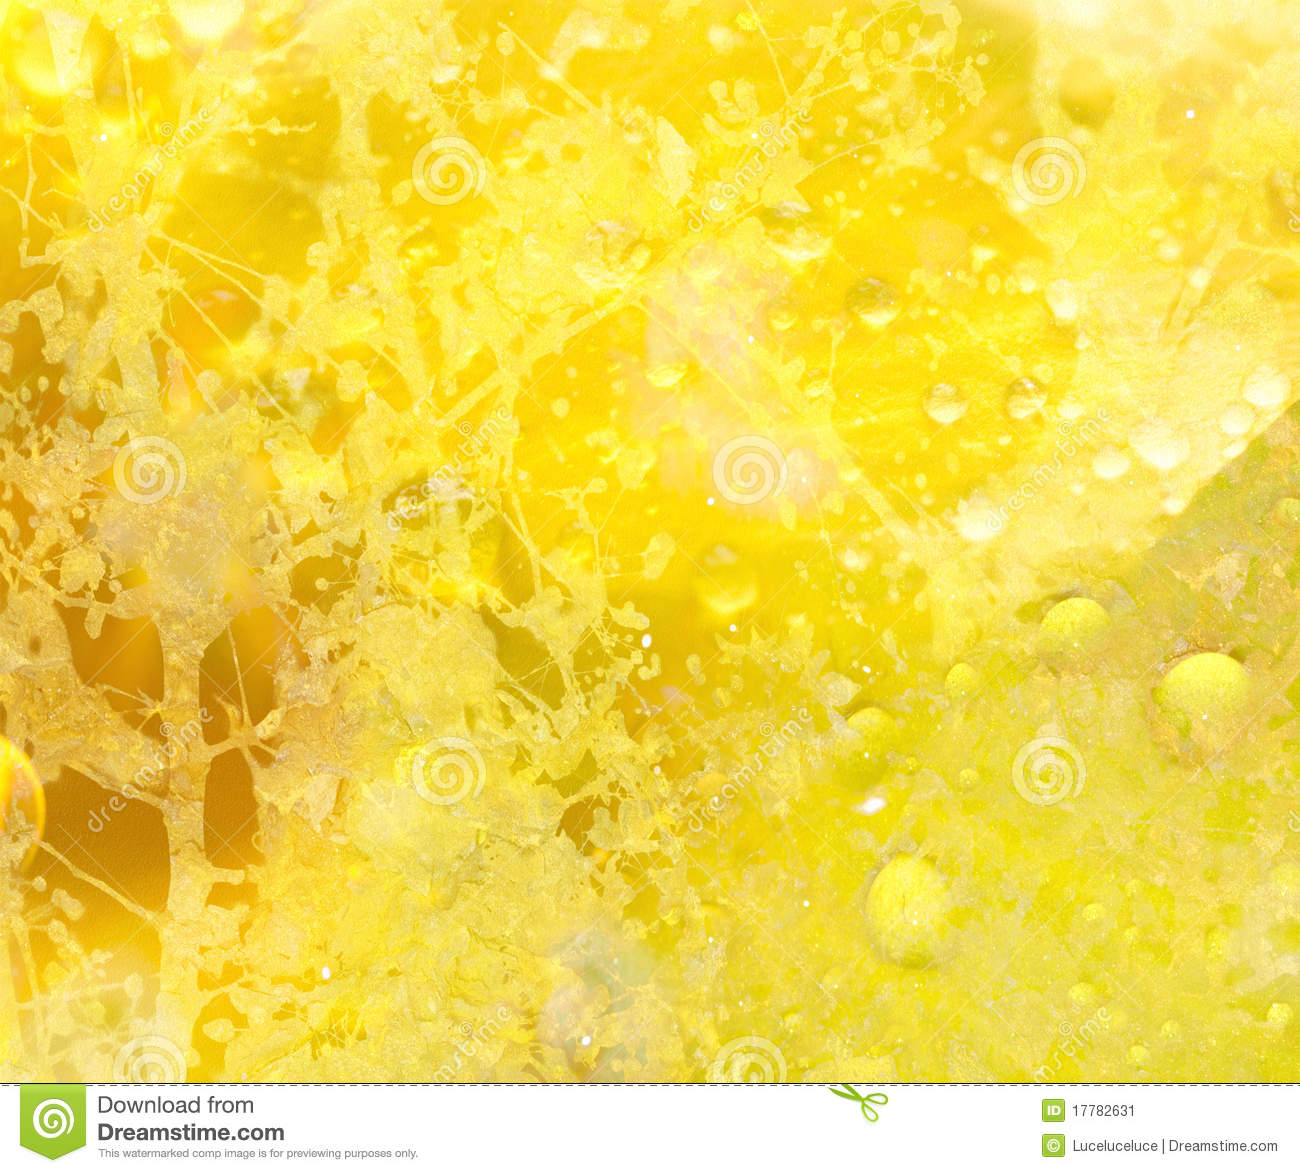 sunshine yellow deep texture - photo #13